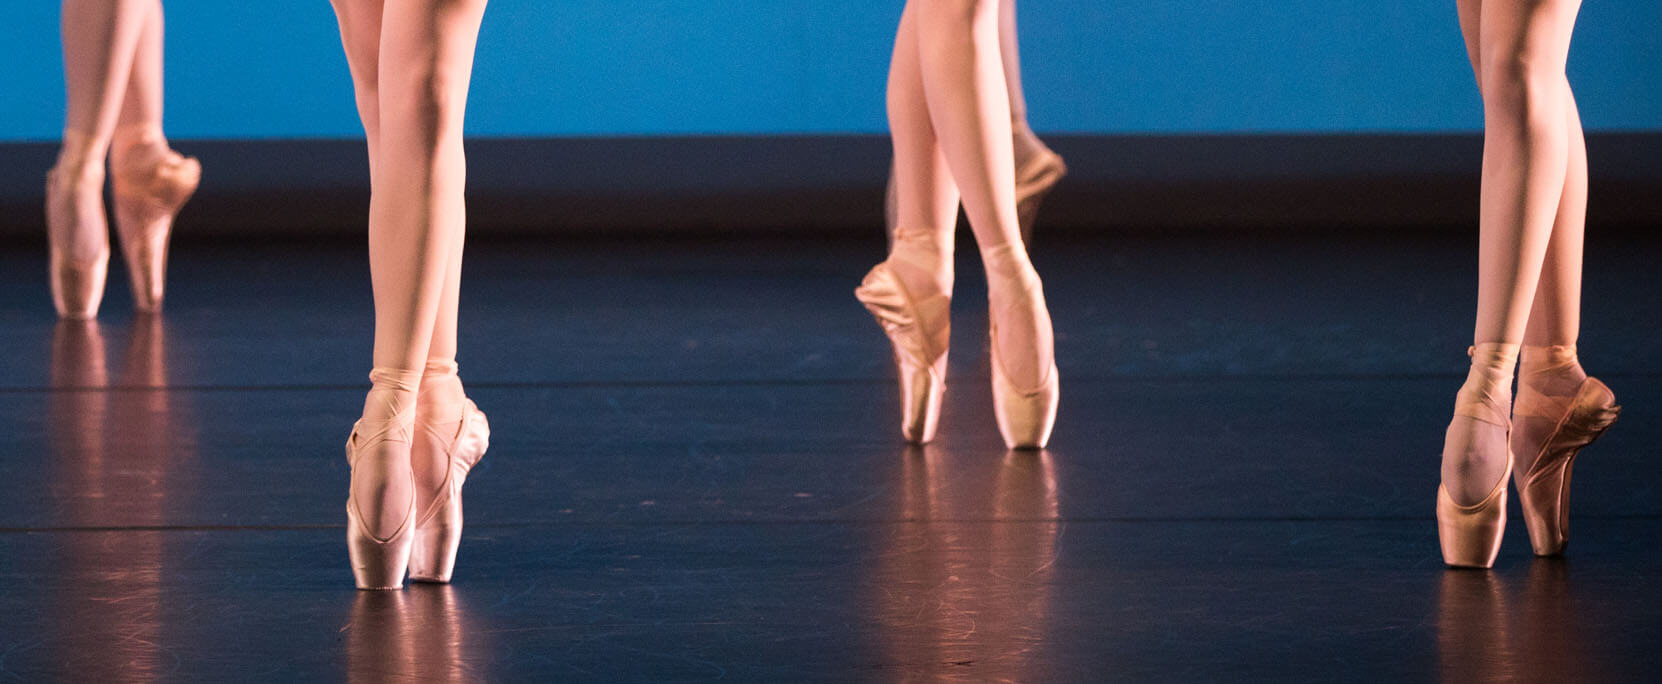 Pointe Work Refresher Online Summer School (ages 12-16+) Image